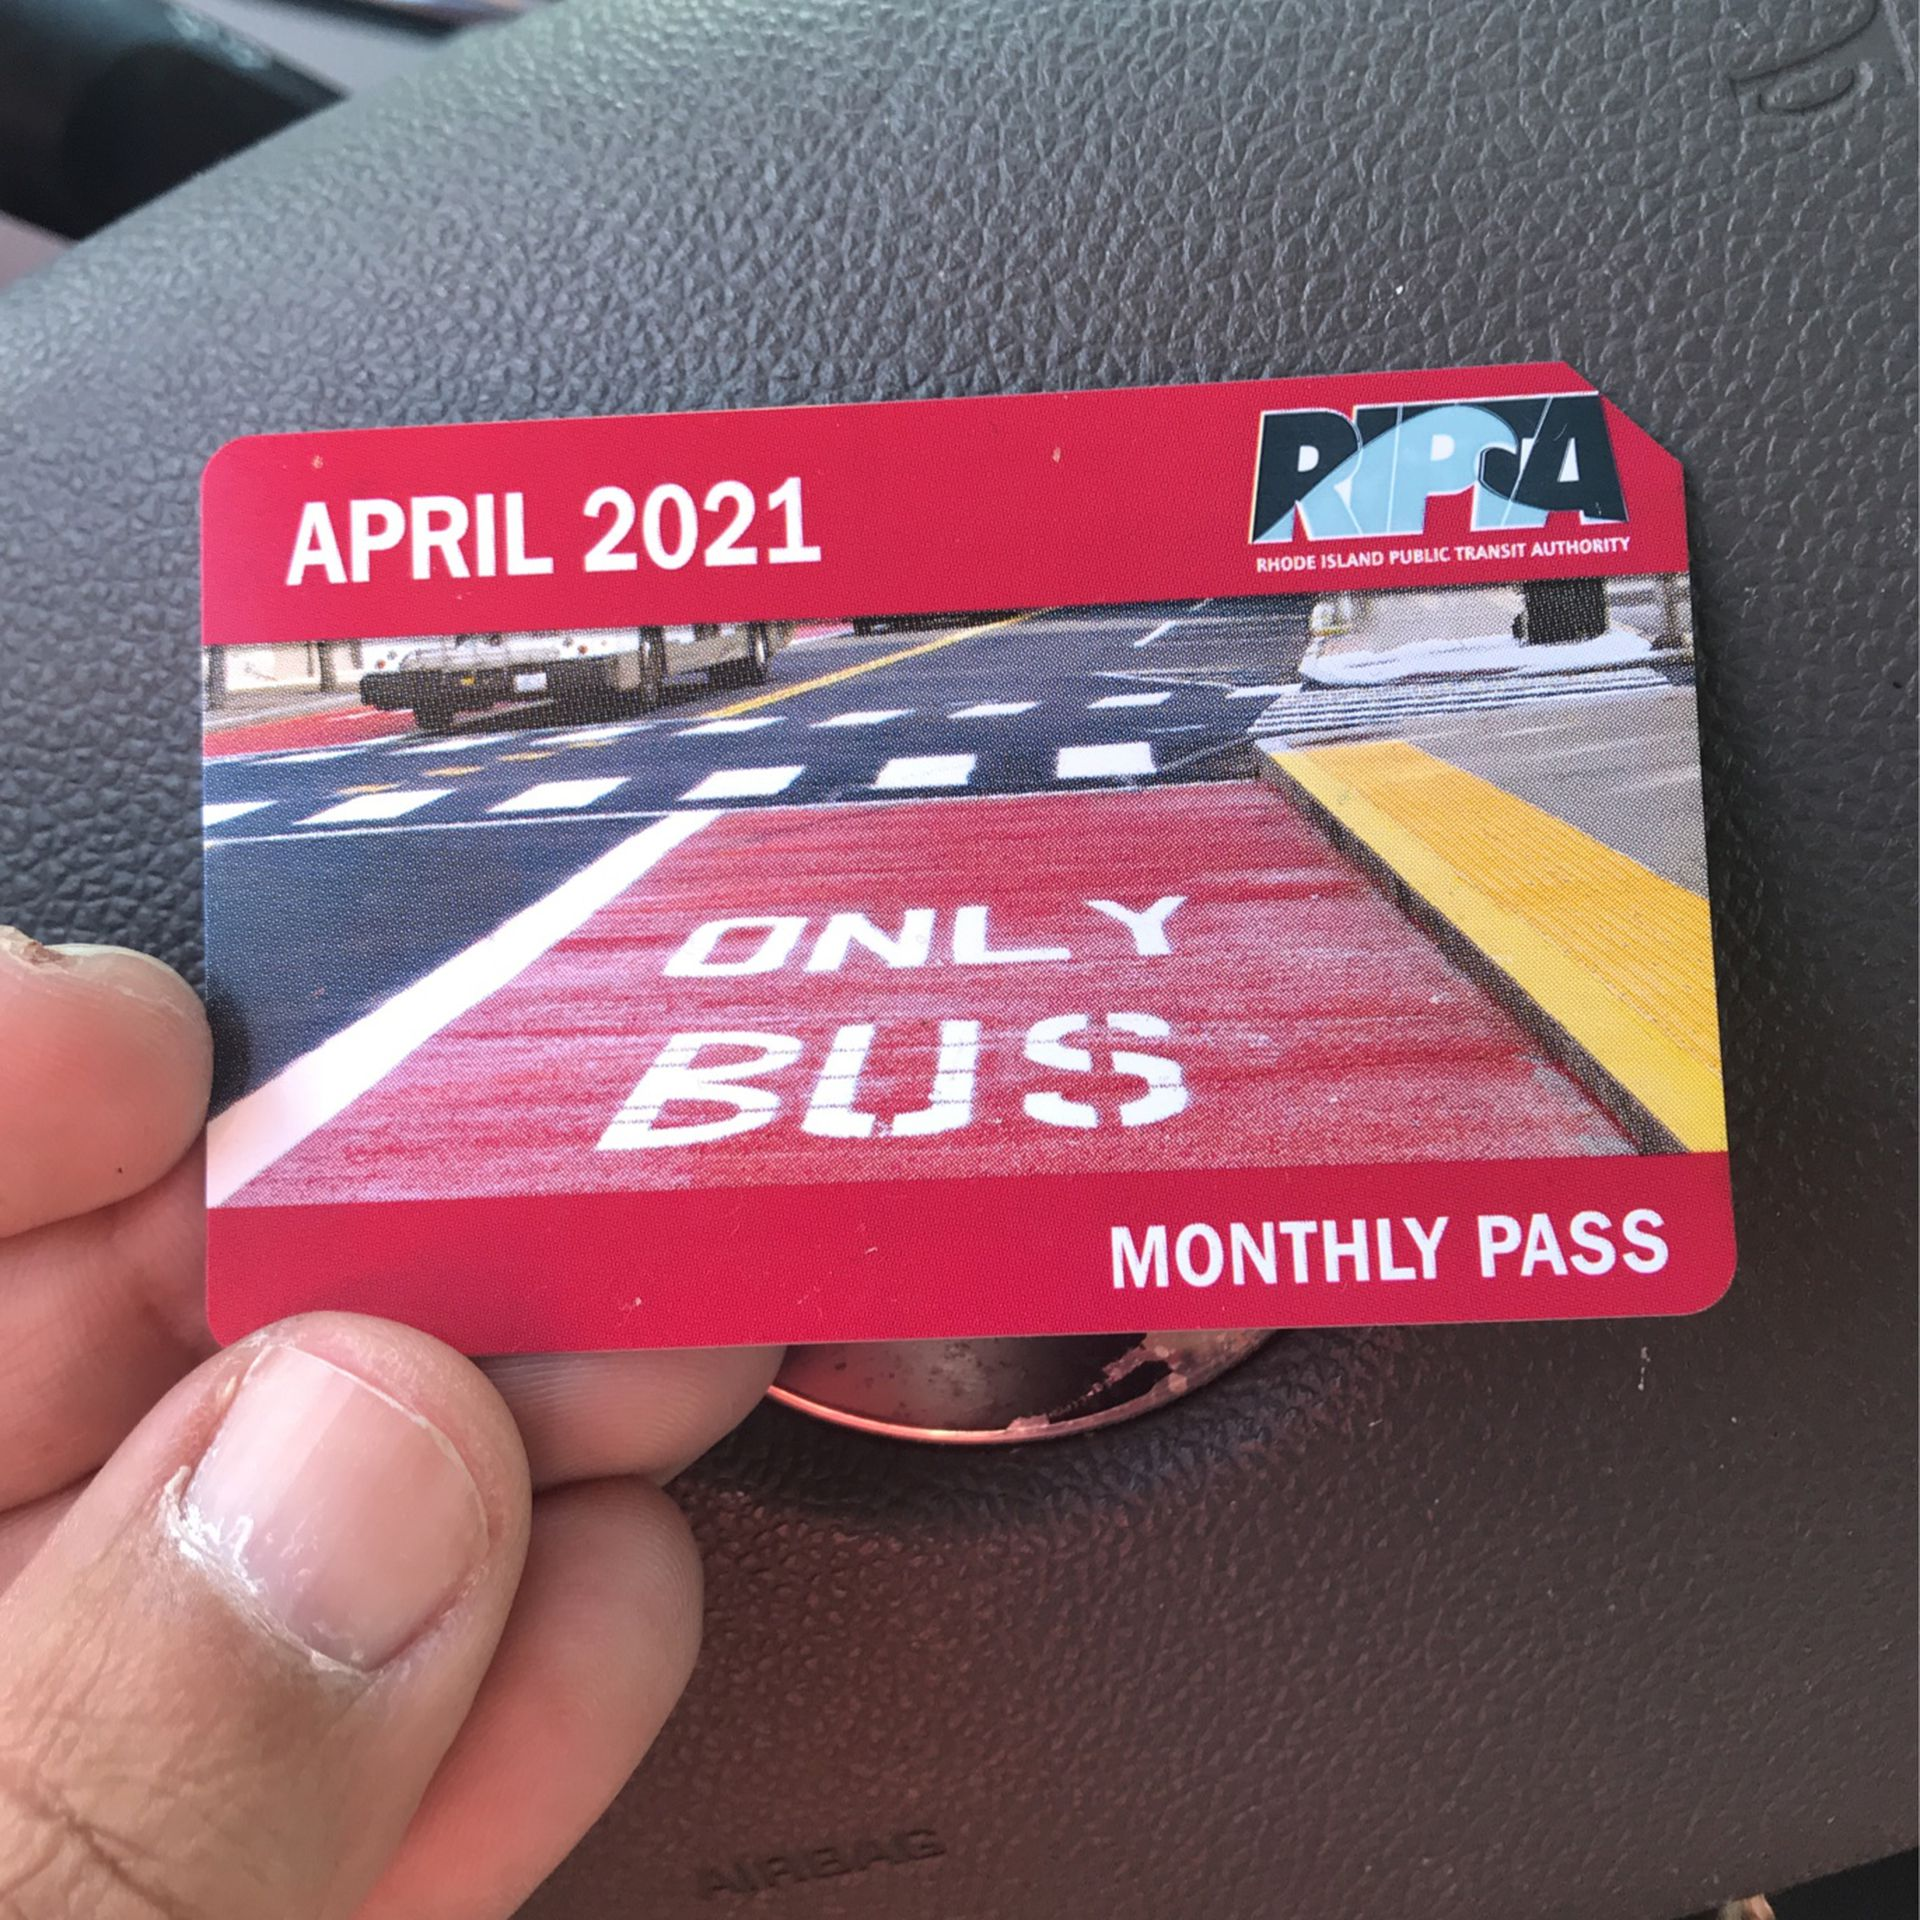 Busspass. unlimited for the month of April